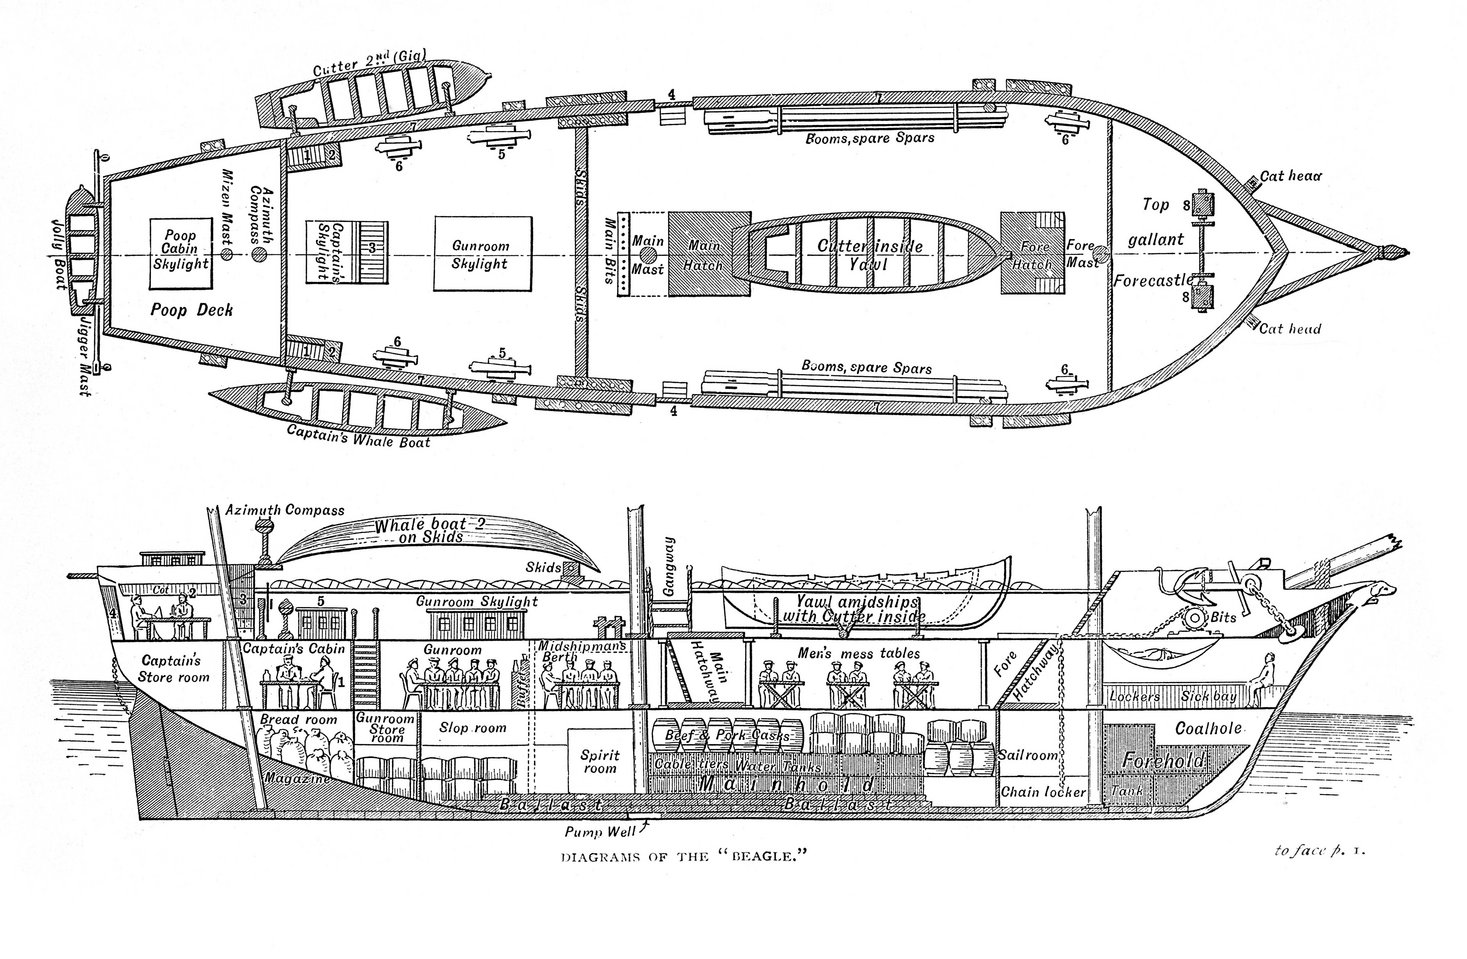 Plan and cross section of HMS Beagle